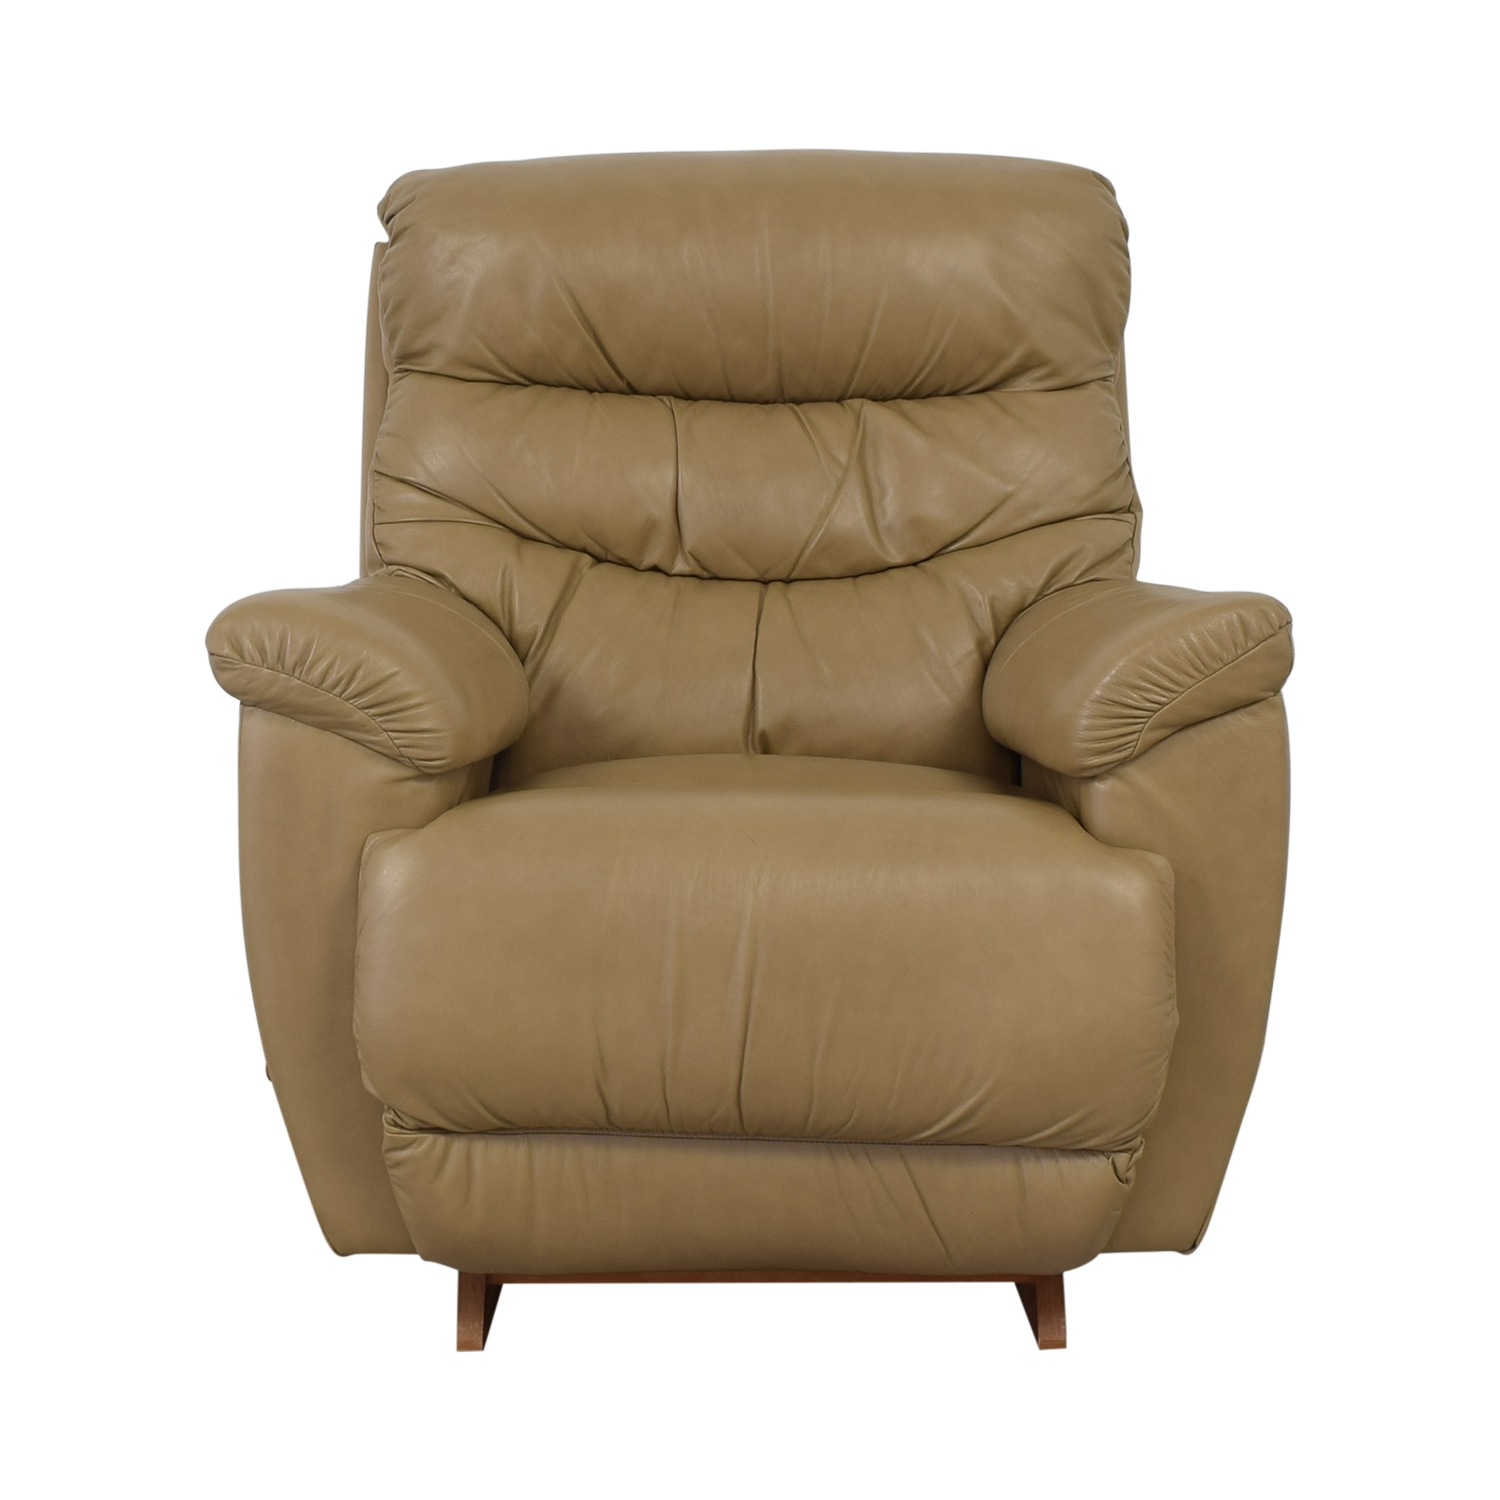 La-Z-Boy La-Z-Boy Leather Recliner Recliners